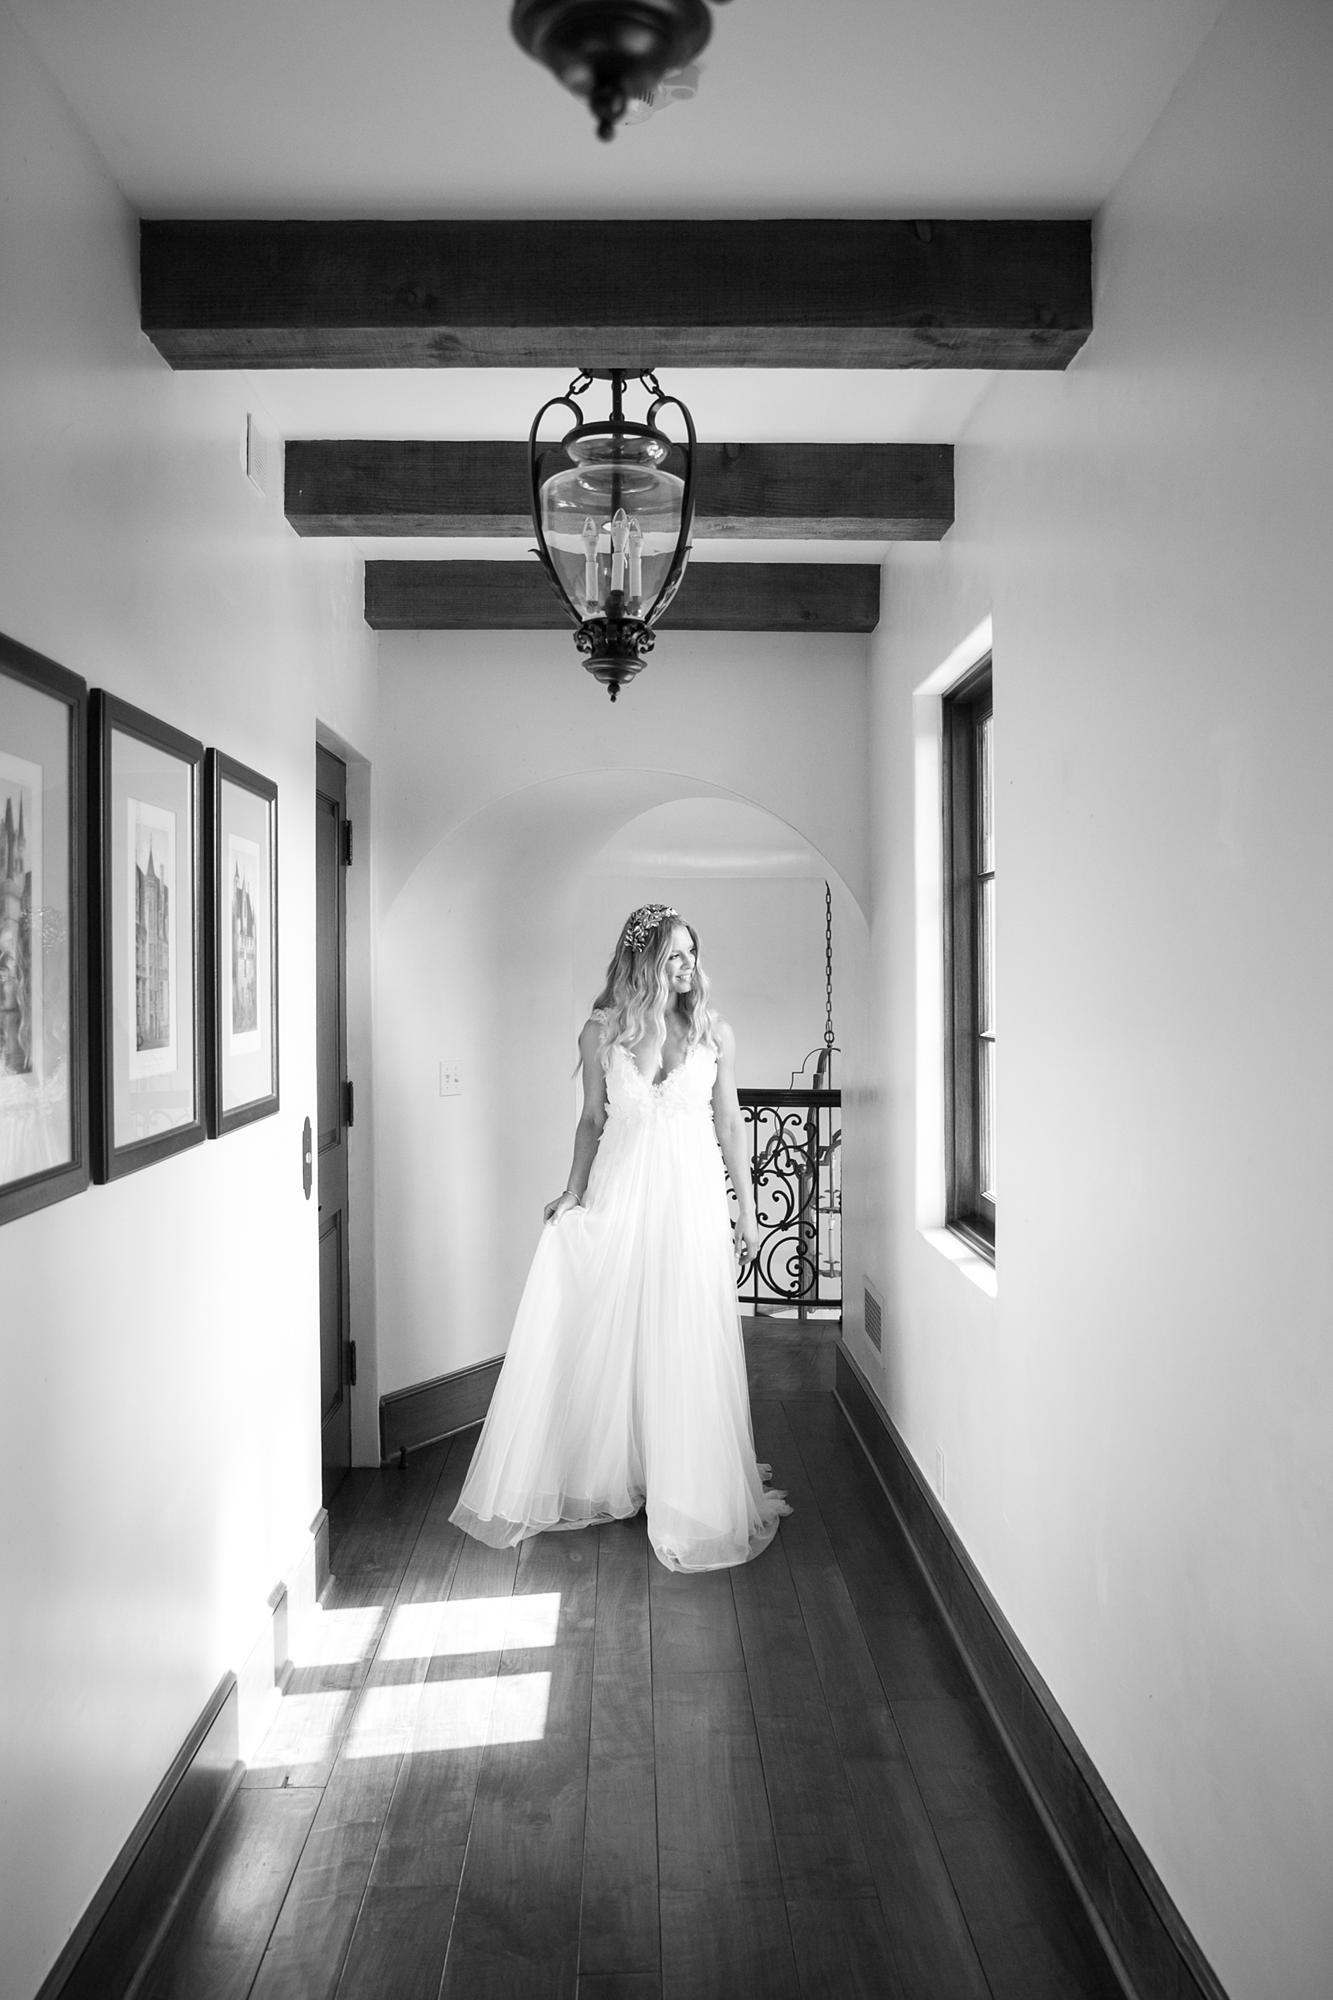 Casa Elar Wedding | Miki & Sonja Photography | mikiandsonja.com